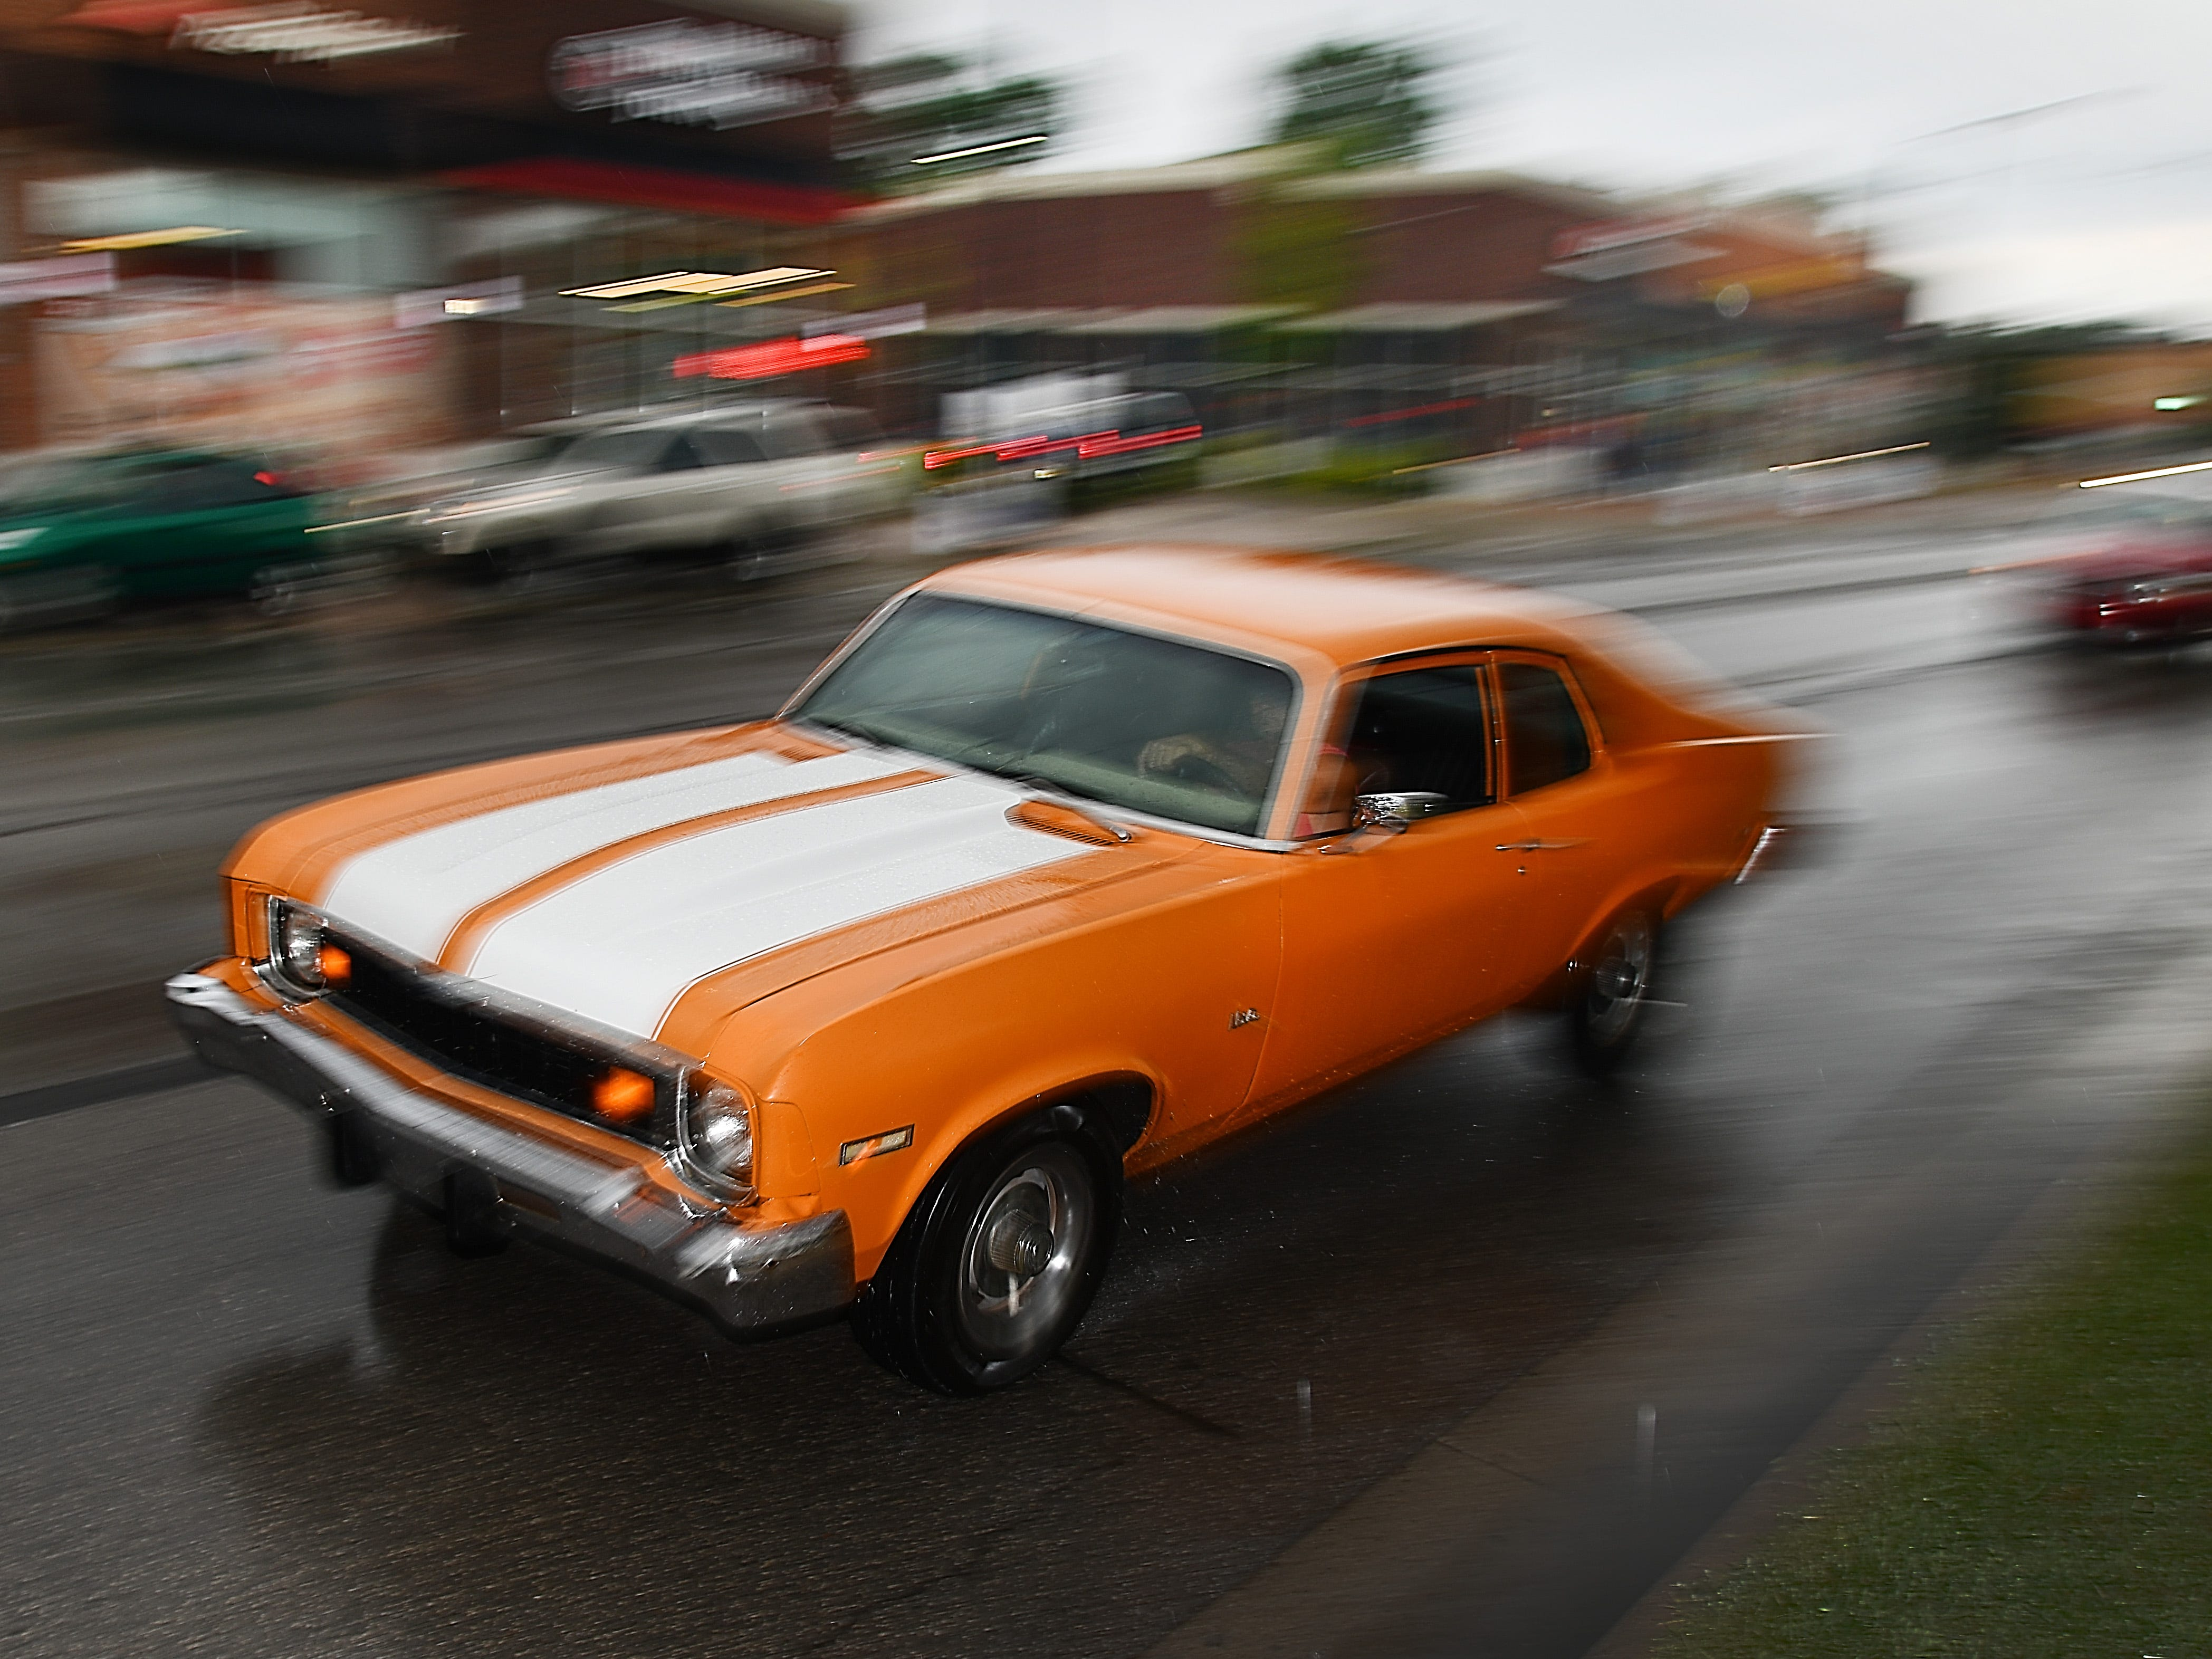 Cars make their way down Woodward Avenue in Ferndale as rain makes its way into the area during Dream Cruise 2018 on August 18, 2018.